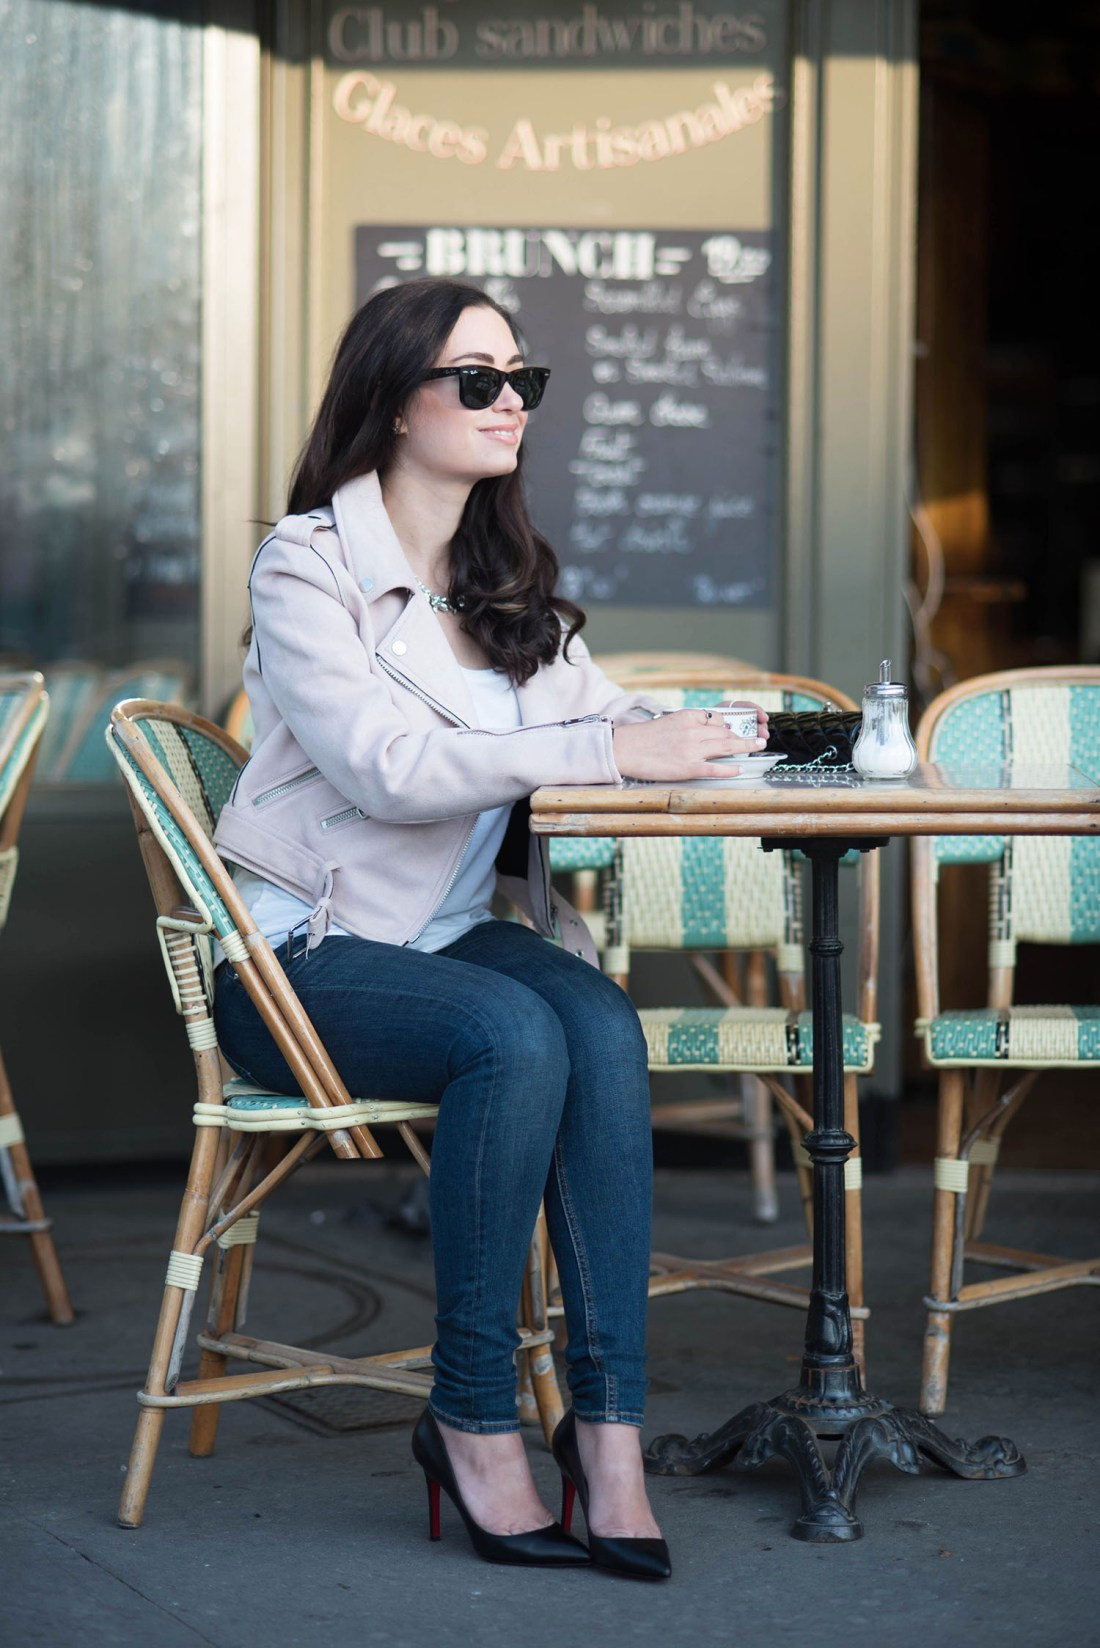 Fashion blogger Cee Fardoe of Coco & Vera sits at the Esmerelda Cafe in Paris wearing Rag & Bone jeans and Christian Louboutin heels